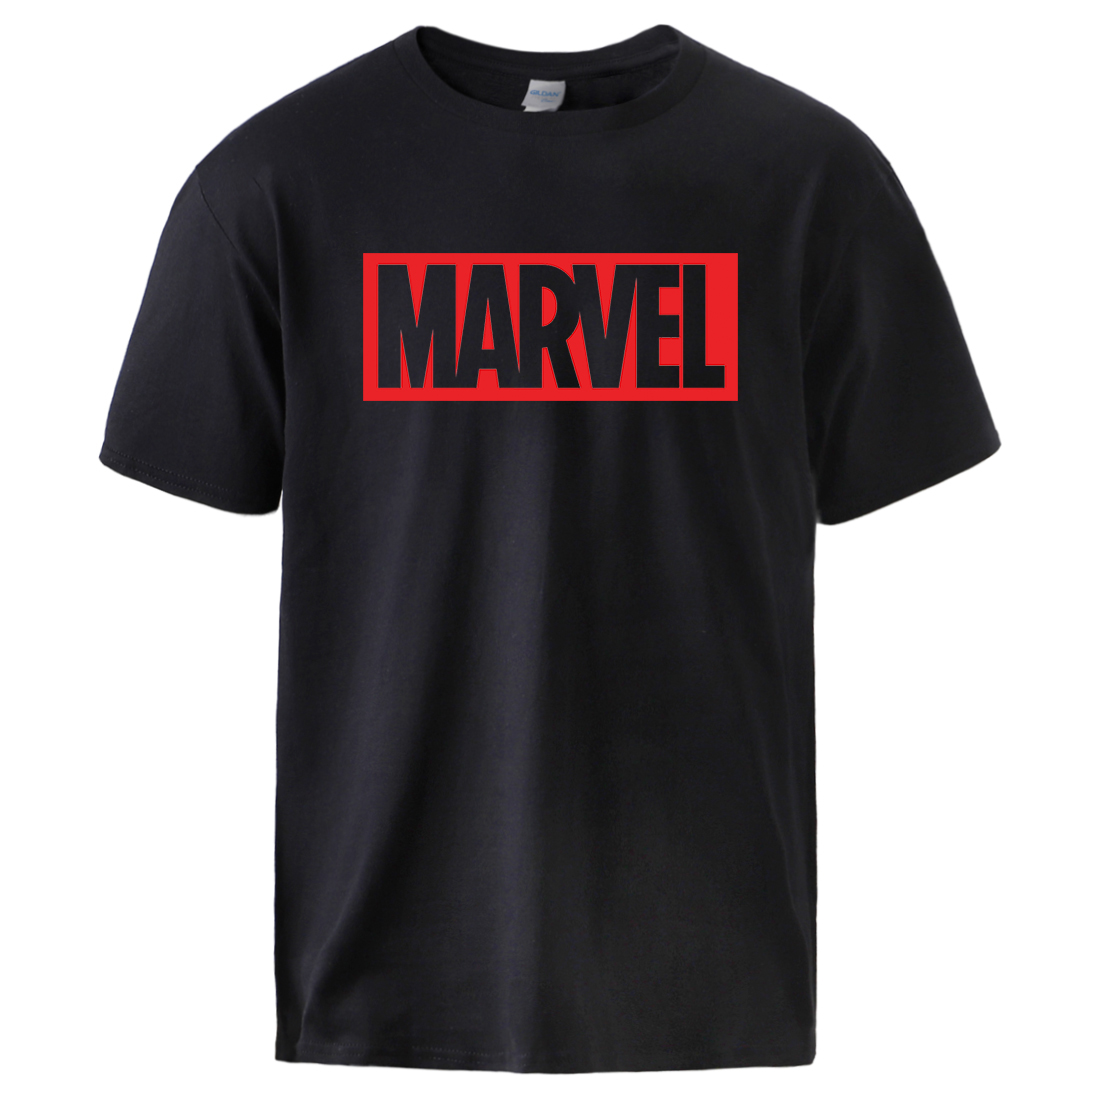 The Avengers Marvel Tshirts Man High Quality Cotton Tee Summer Casual T Shirt 2020 Man Brand Loose Fit Sporswear Fashion T Shirt